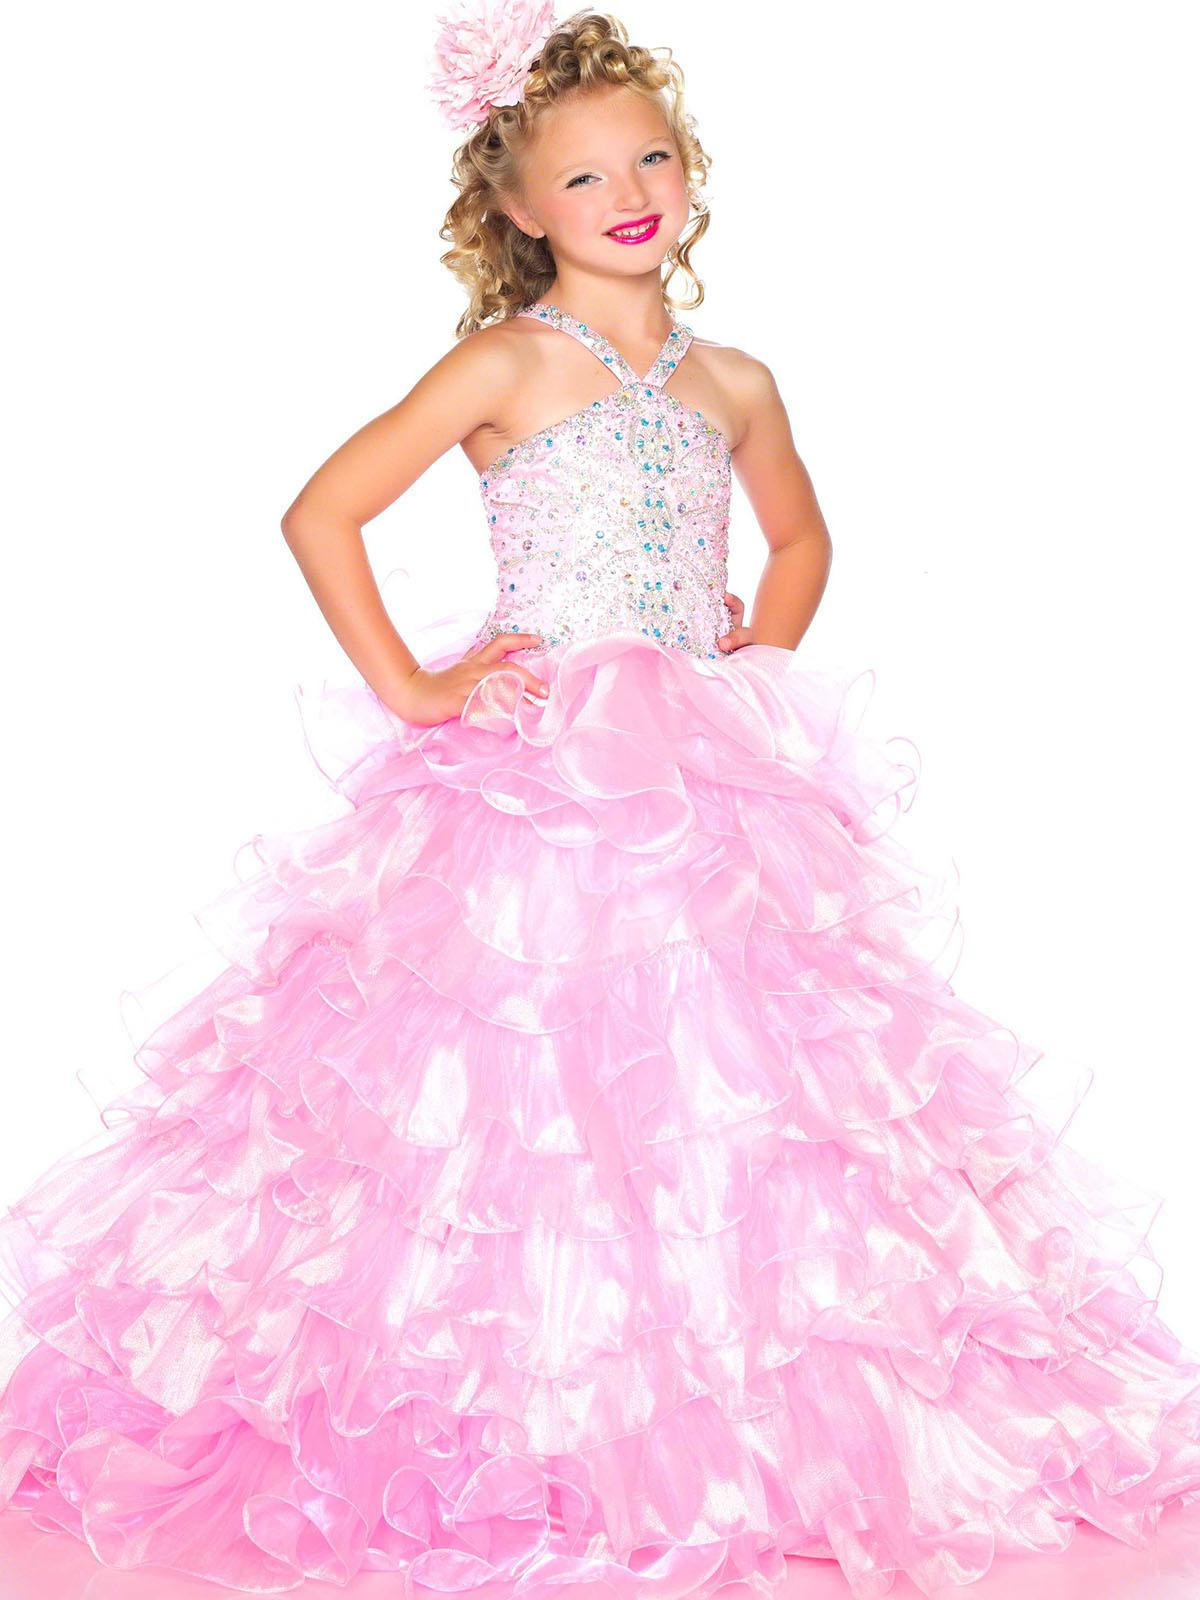 Girls Size 12 Holiday Dresses Price Comparison | Buy Cheapest ...